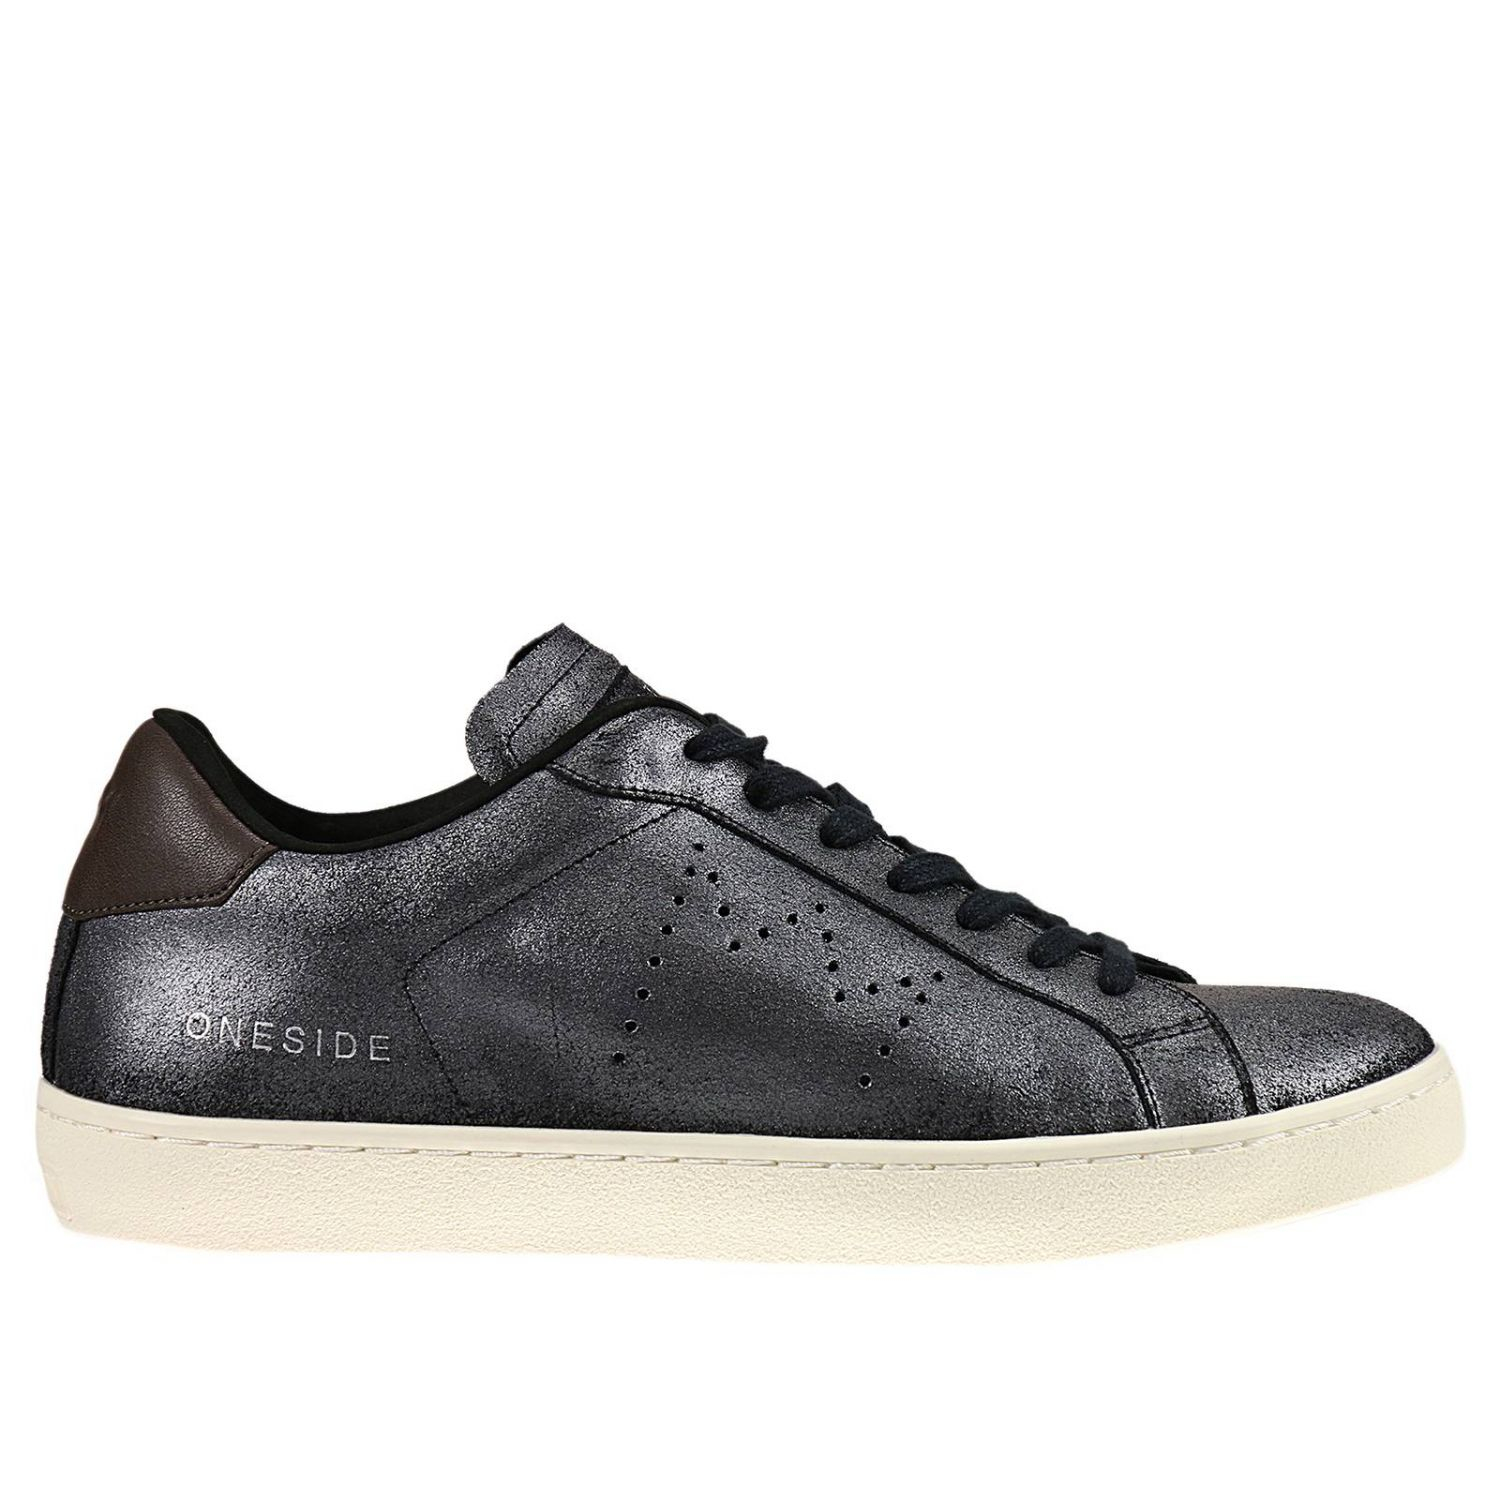 https   www.lyst.com shoes leather-crown-sneakers-shoes-man-lead ... 4a82f2ee6c